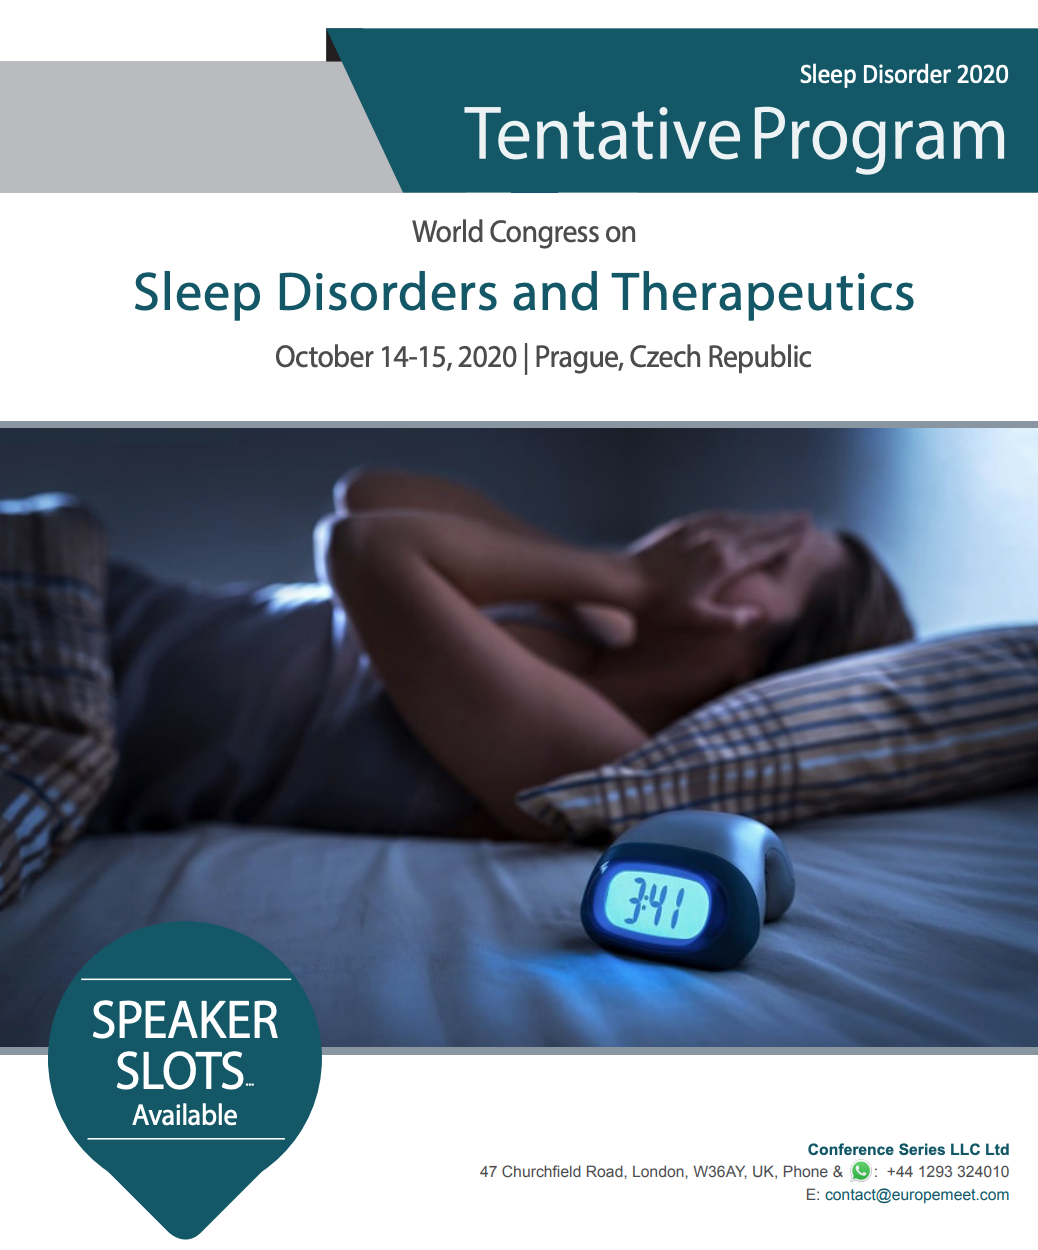 World Congress on Sleep Disorders and Therapeutics, Prague, Czech Republic